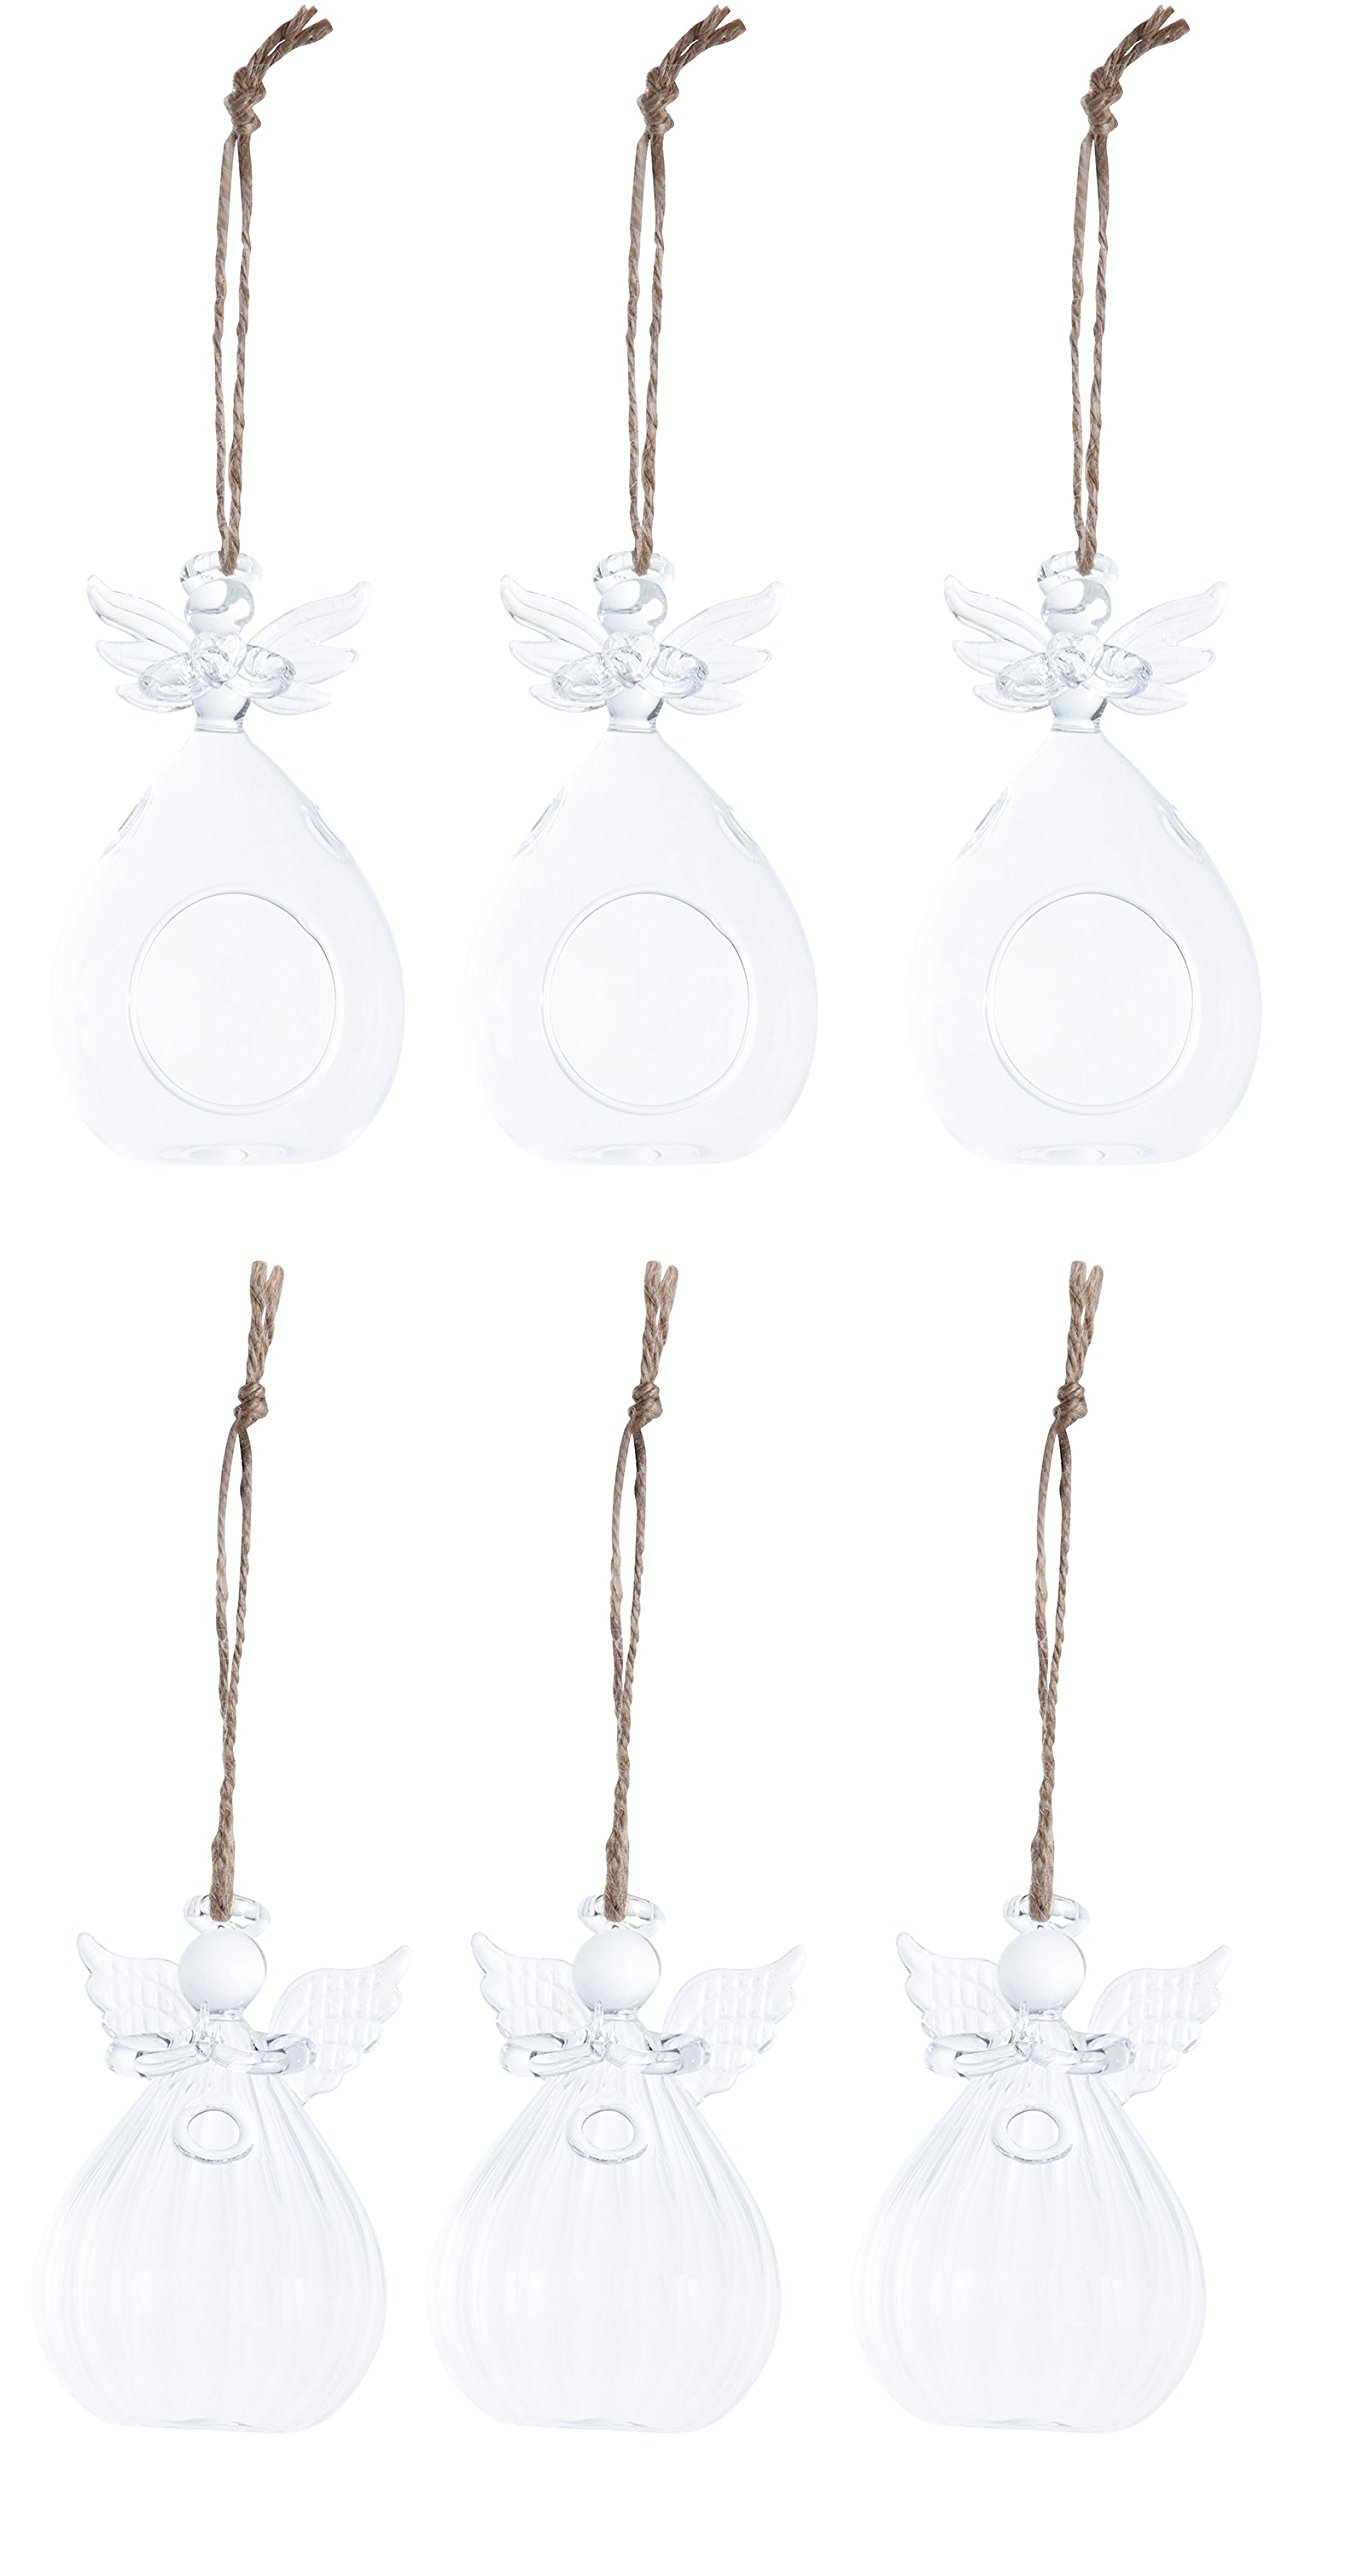 Juvale Hanging Glass Terrarium - 6-Pack, 2 Designs Glass Orbs Terrarium Holder Succulent Plants, Colorful Sand, Tealight Candles, Indoor Outdoor House Decor, 2 Assorted Angel Design by Juvale